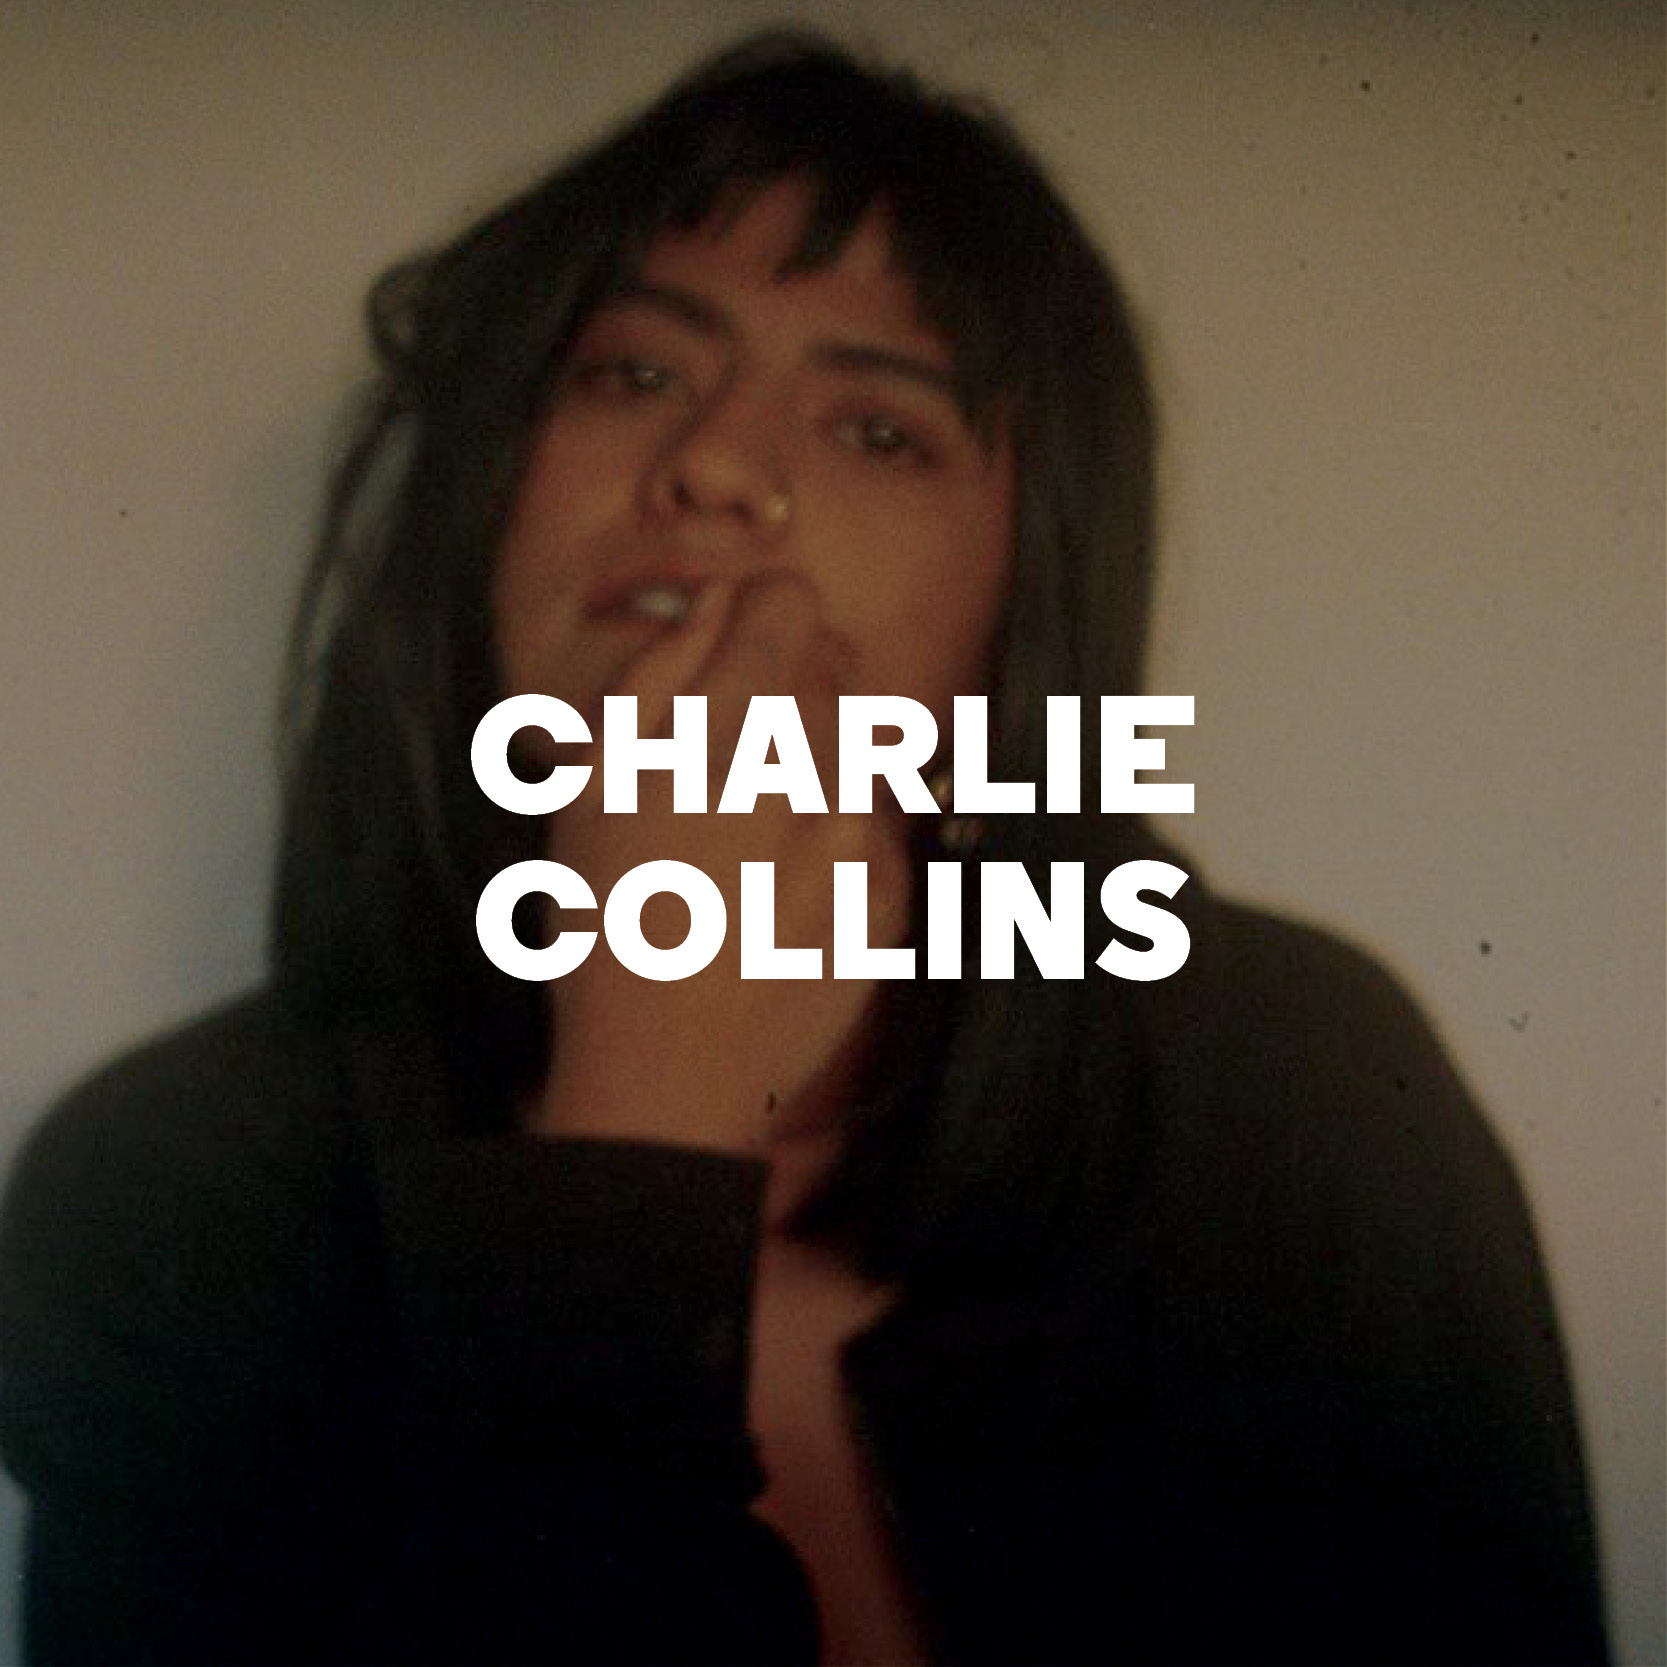 CHARLIE COLLINS